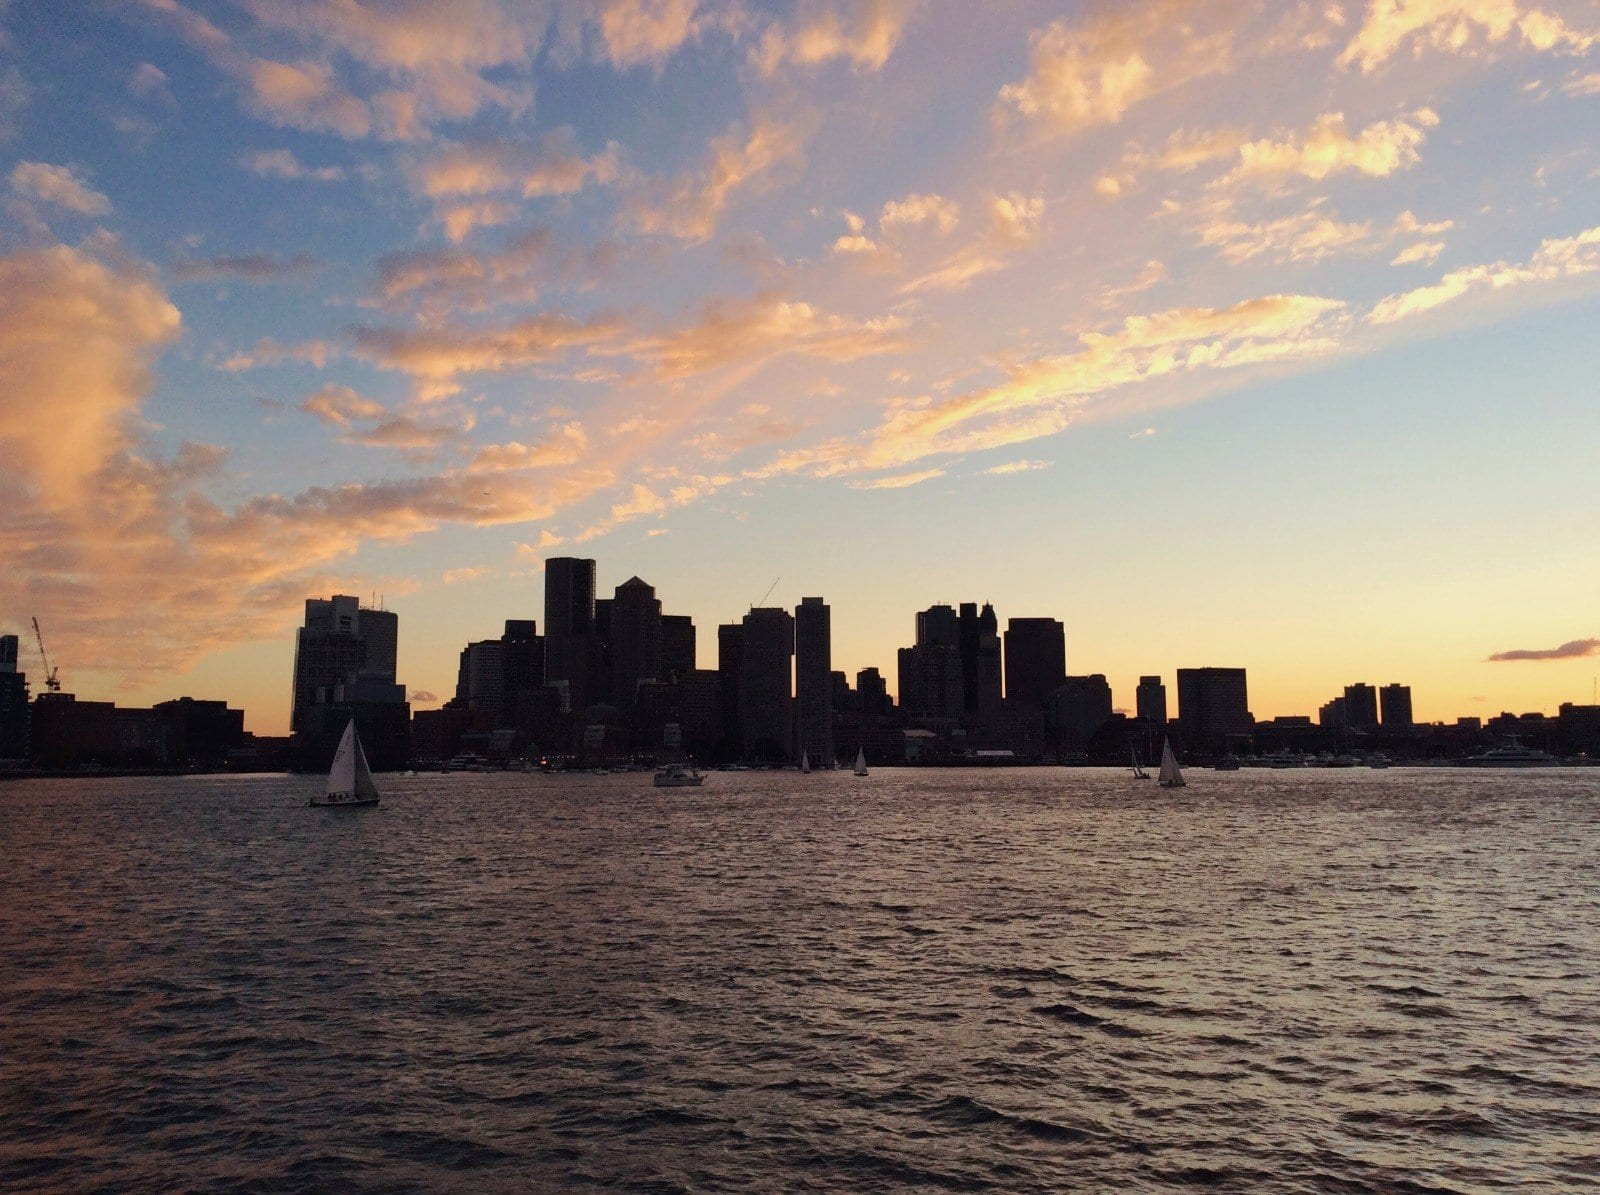 silhouette of the Boston skyline at sunset, photo by Roaming Boston